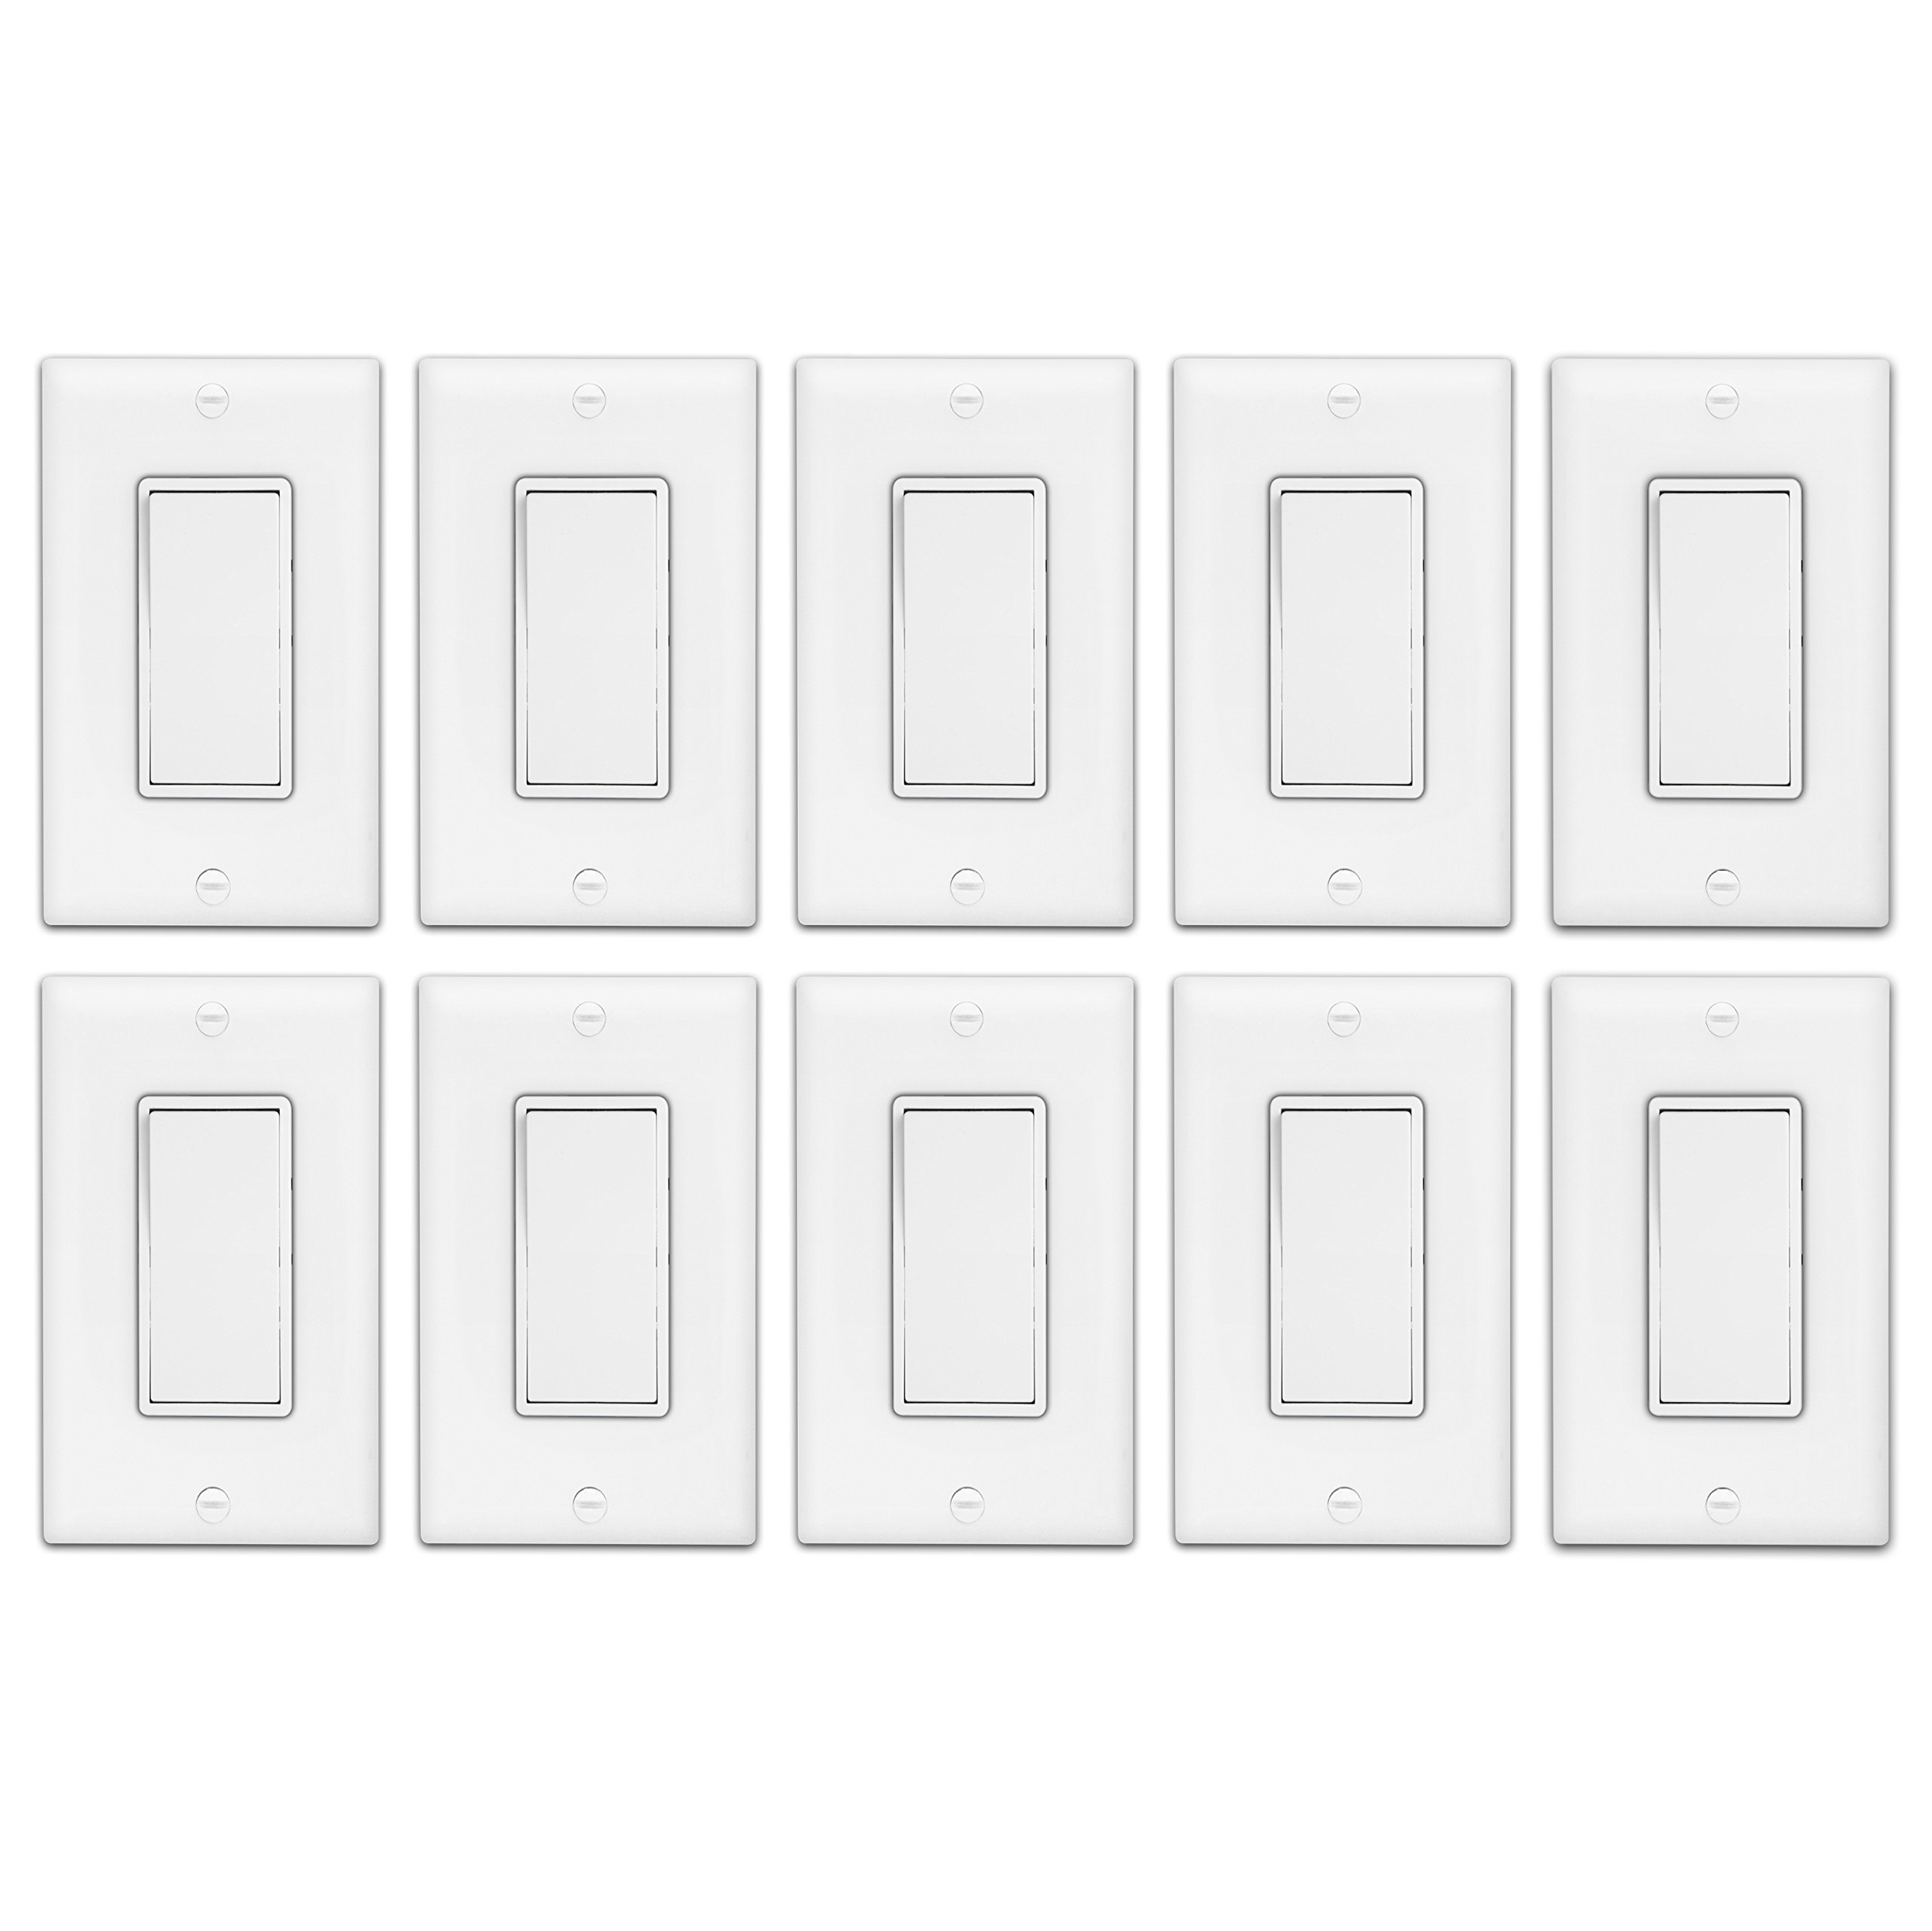 Enerlites Decorator On/Off Paddle Wall Switch with Covers, 91150-WWP | 15 Amp, 120-277VAC, Single Pole, 3 Wire, Grounding, Residential and Commercial Graded Light Switches, UL Listed | White - 10 Pack